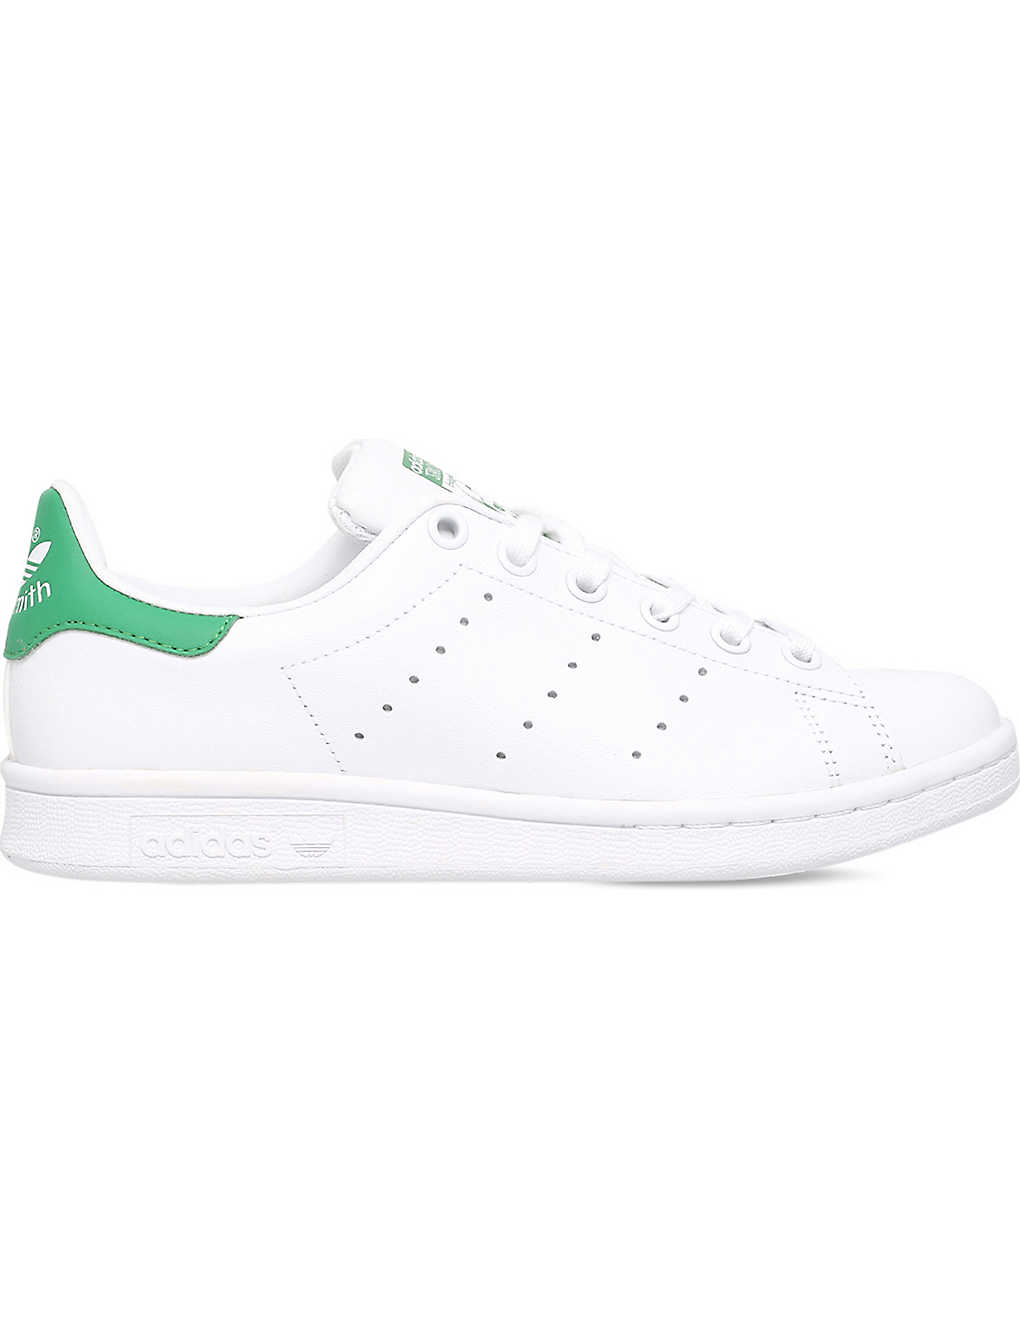 new style f49dc 08dab Stan Smith 6 months-3 years - Whiteoth ...